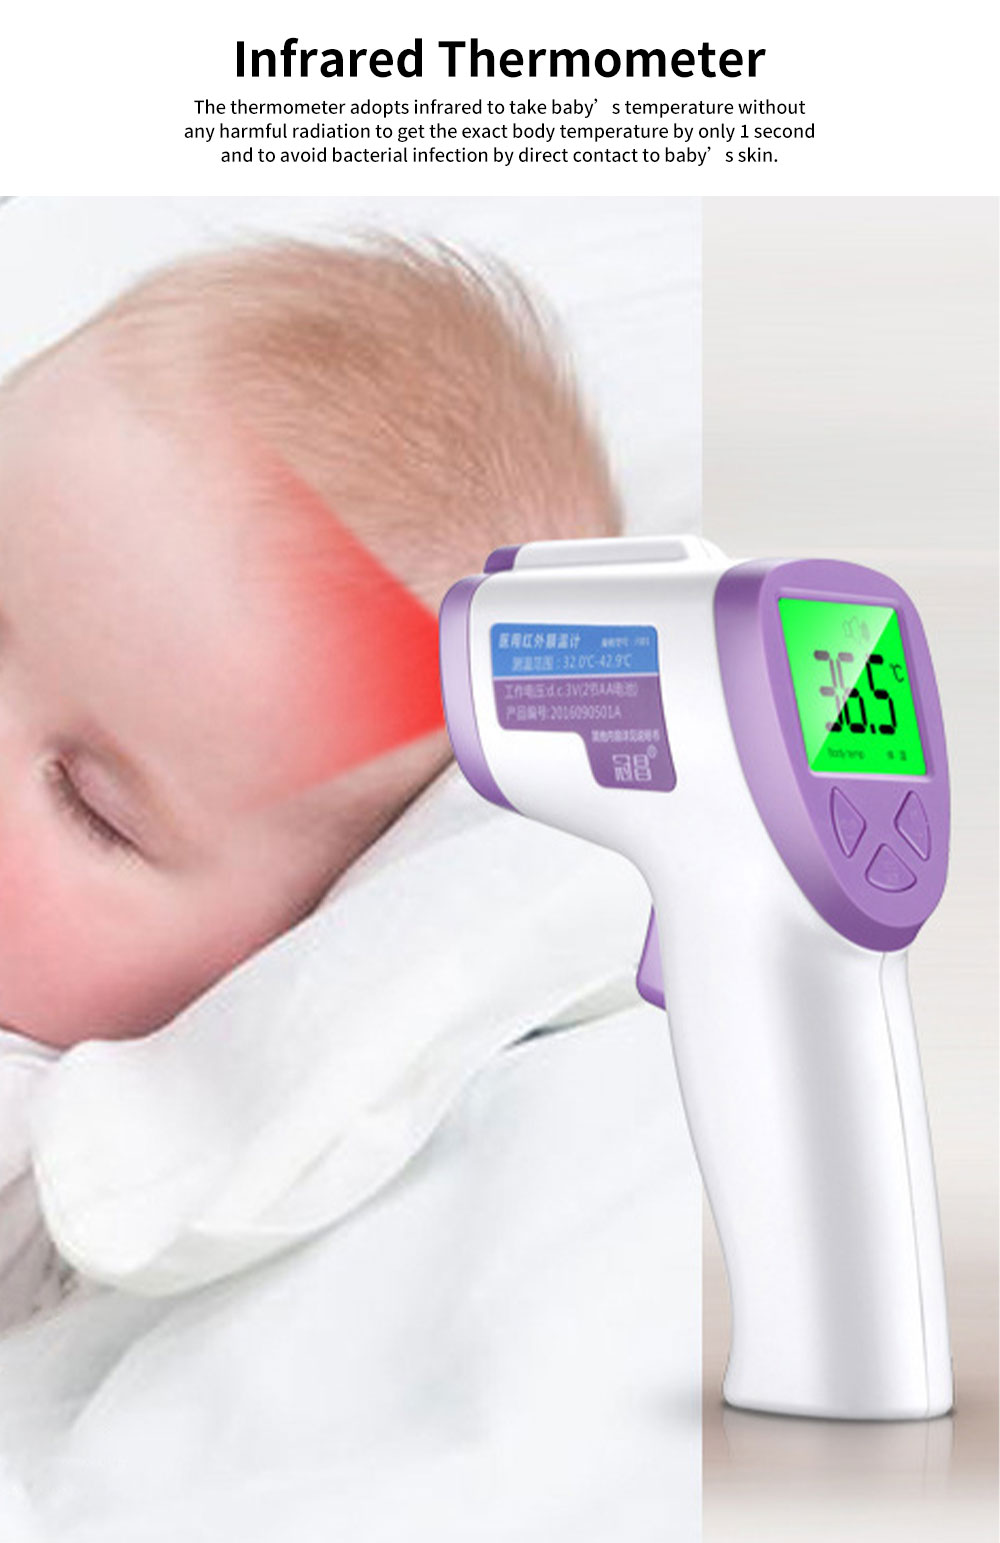 Infrared Electric Clinical Thermometer for Baby Use Infrared Thermometer Gun Medical Non-contact LCD Infrared Thermometer for Baby Health Care 3